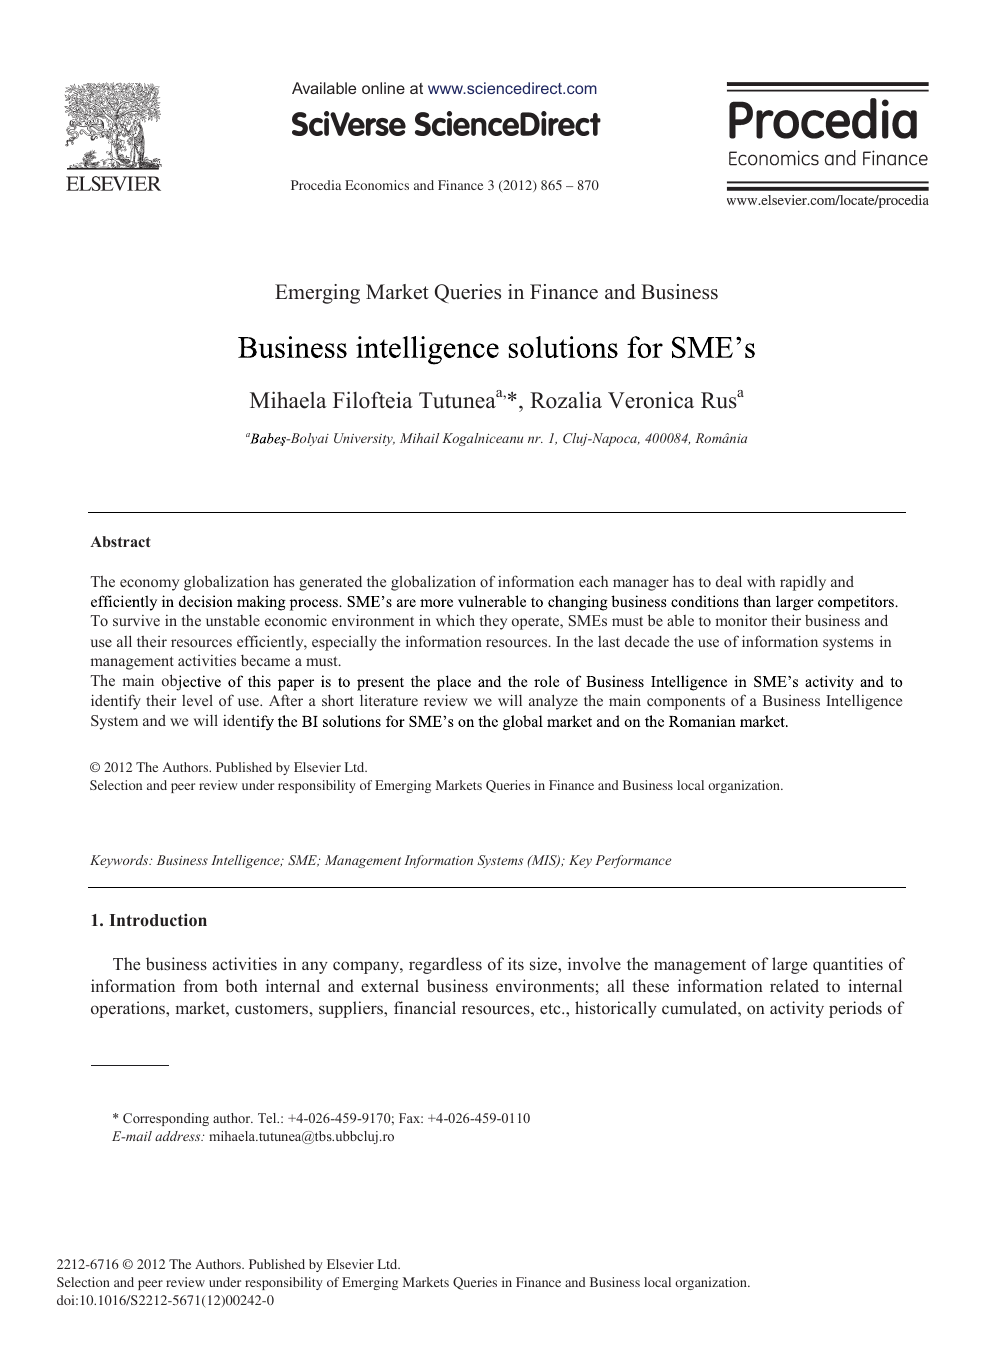 business intelligence research papers